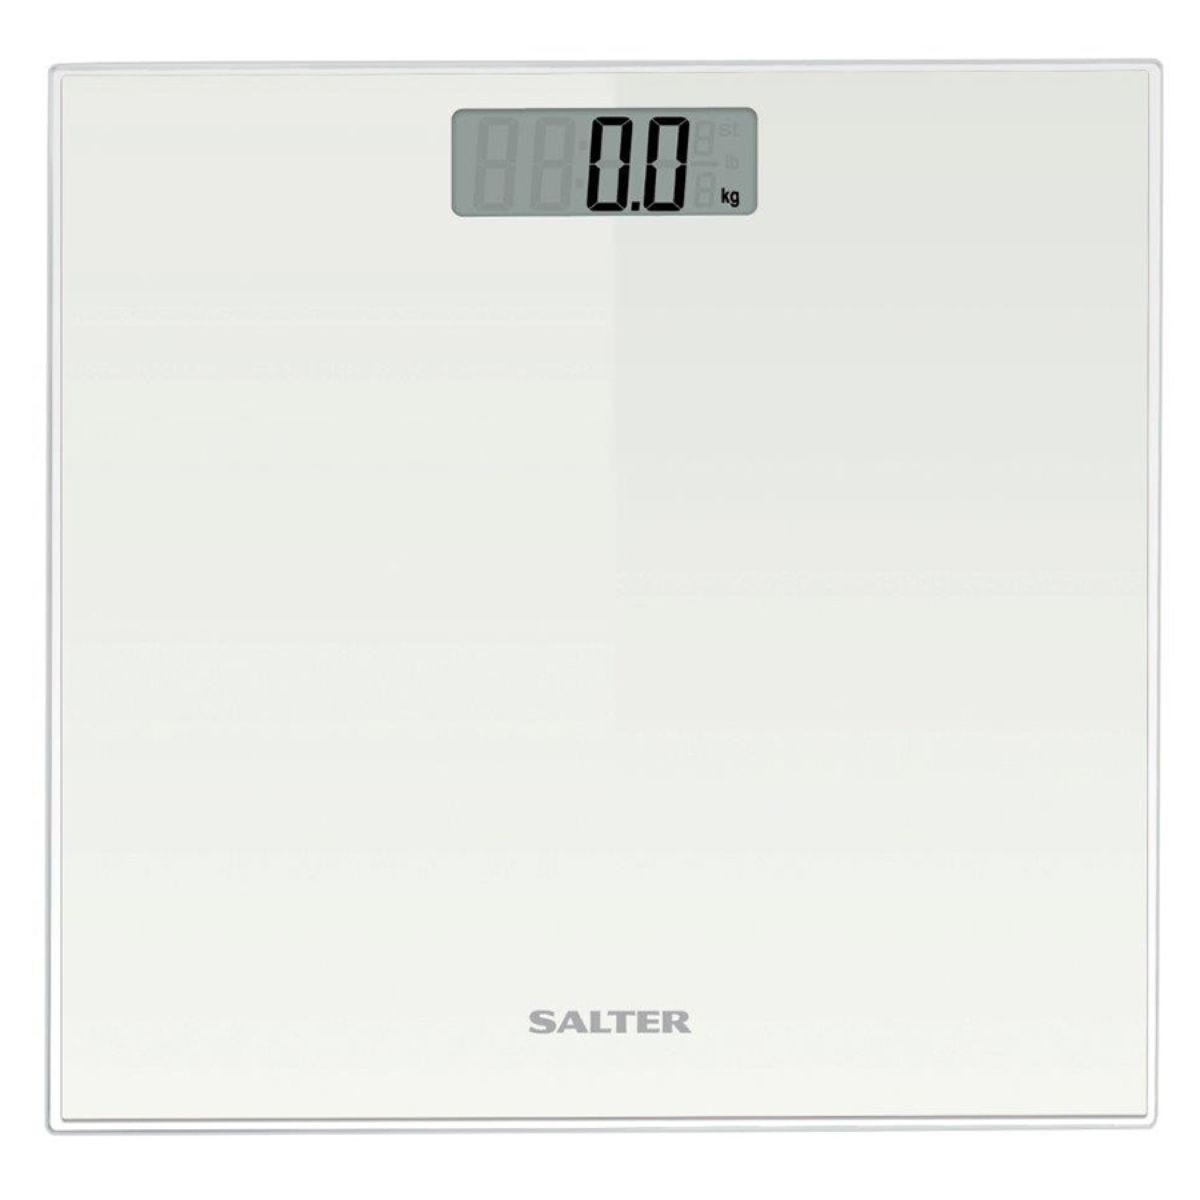 Salter Electronic Scales - White